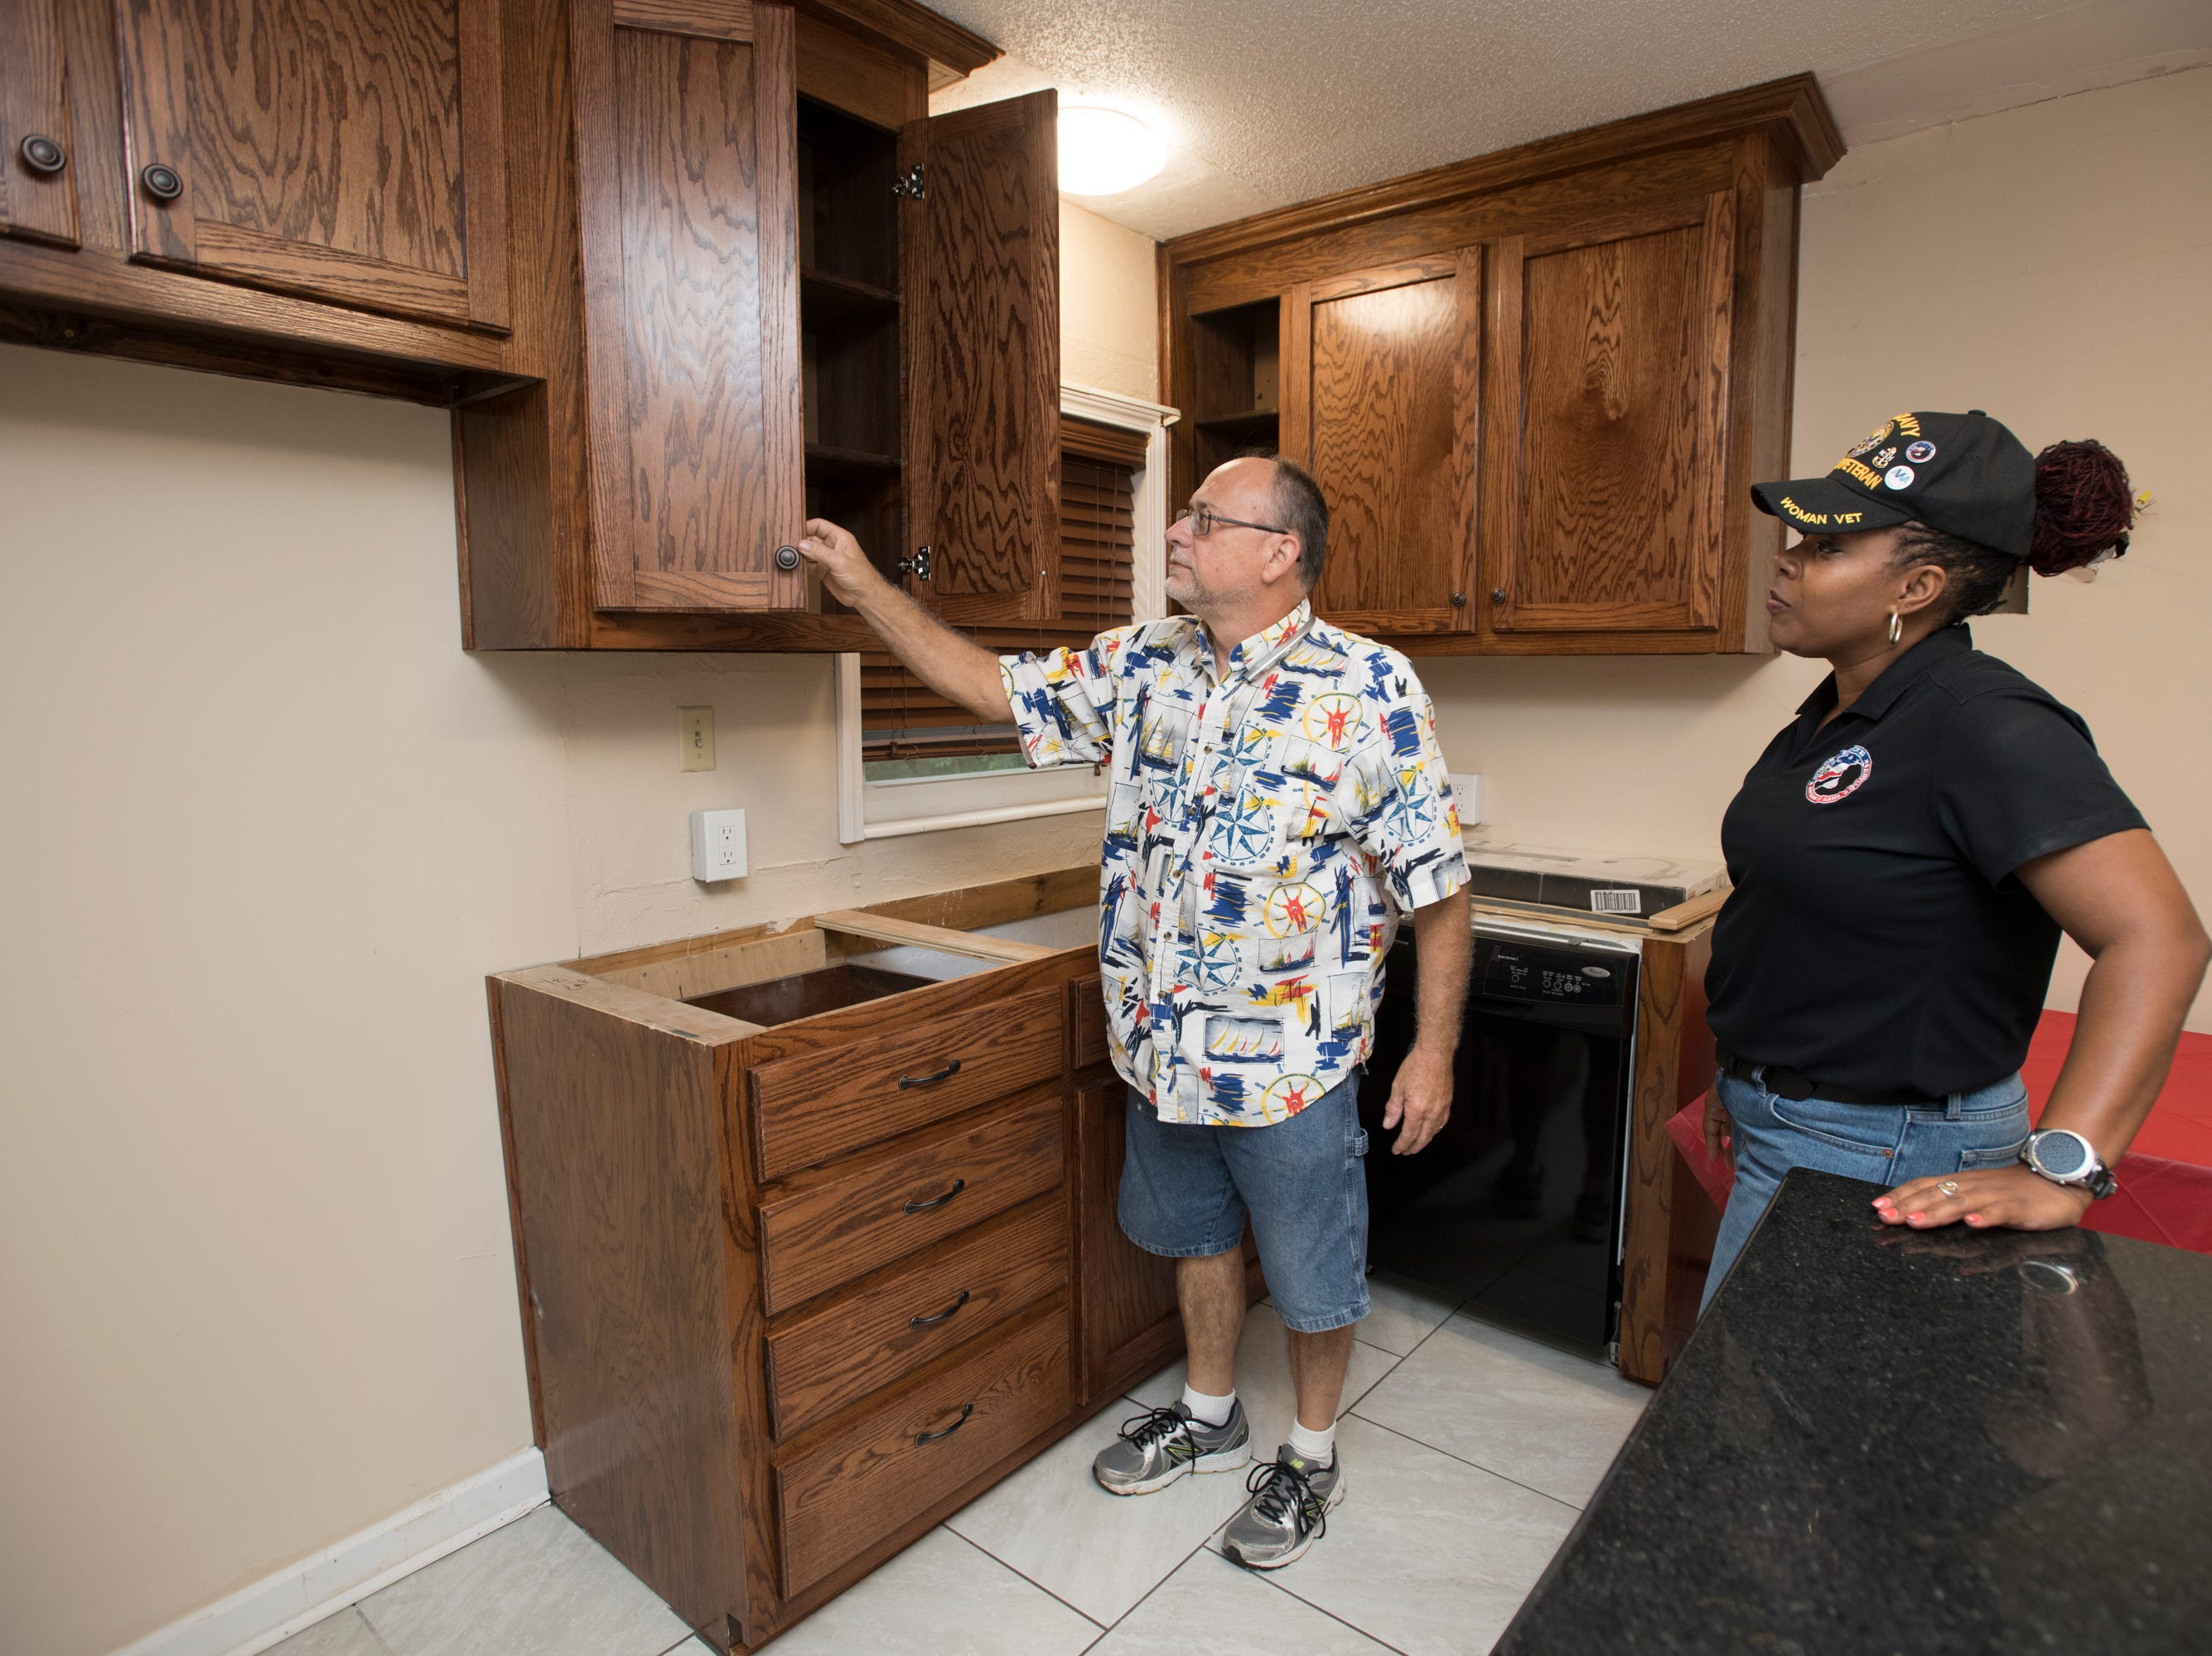 CEO and founder Nancy Bullock-Prevot, right, and Mike Frazier look through the kitchen cabinets at the HER Foundation Faith House on West Fairfield Drive in Pensacola on Wednesday, November 7, 2018.  Frazier donated his craftsmanship to provide the cabinets for the house.